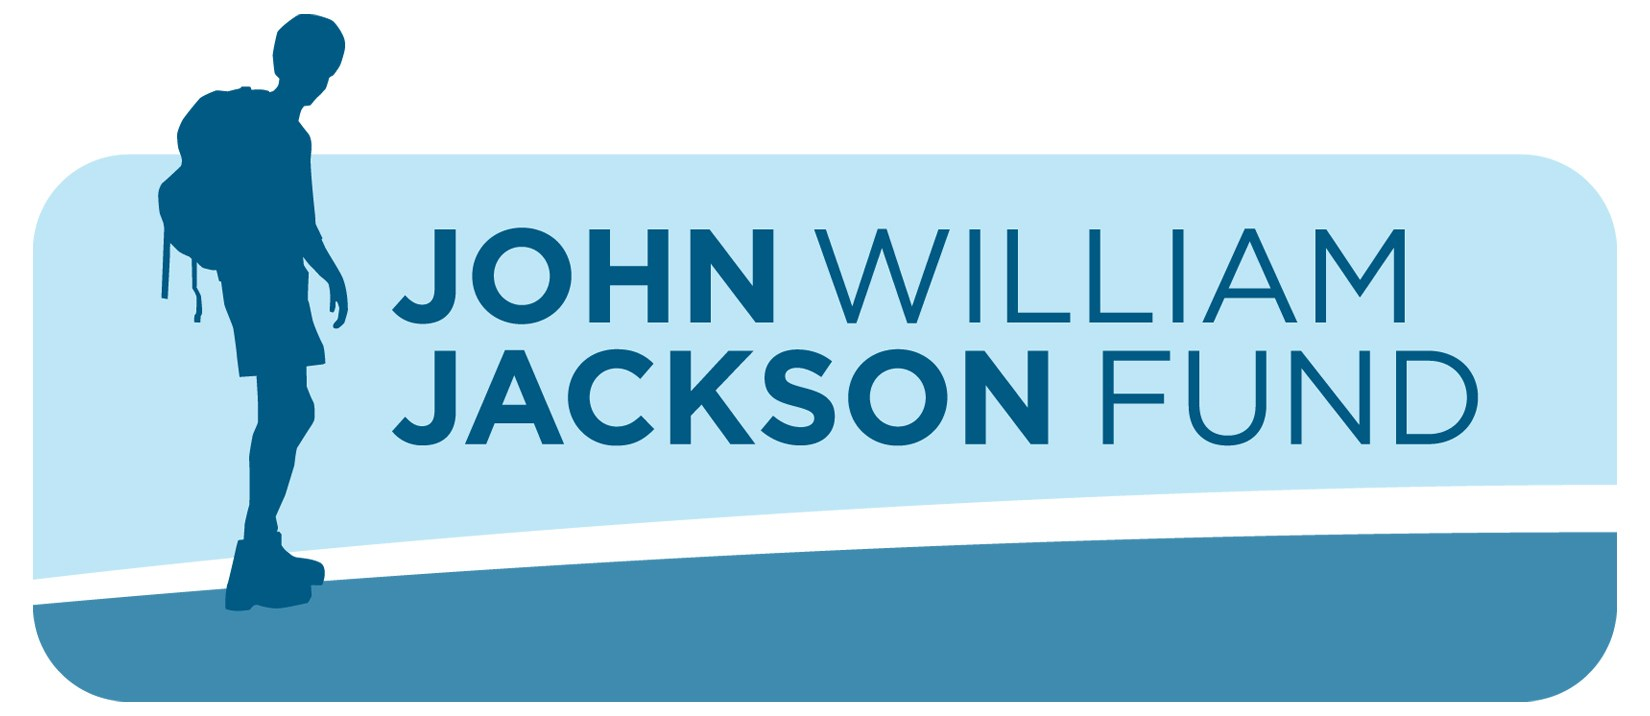 MCS Sponsor John William Jackson Fund-Thank you for instruments!